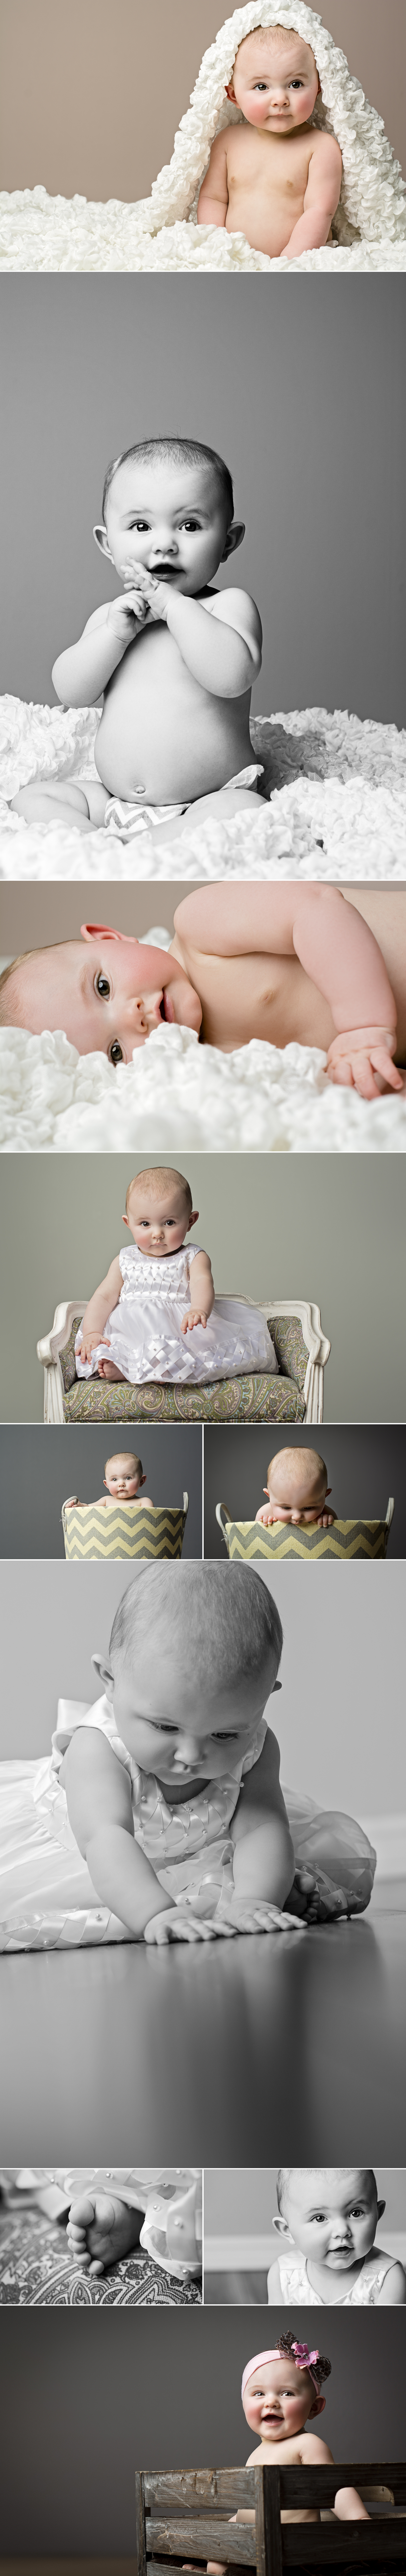 6 Month Baby in studio Lifestyle Photography by Friday Design + Photography from Edmonton, Alberta, Canada.